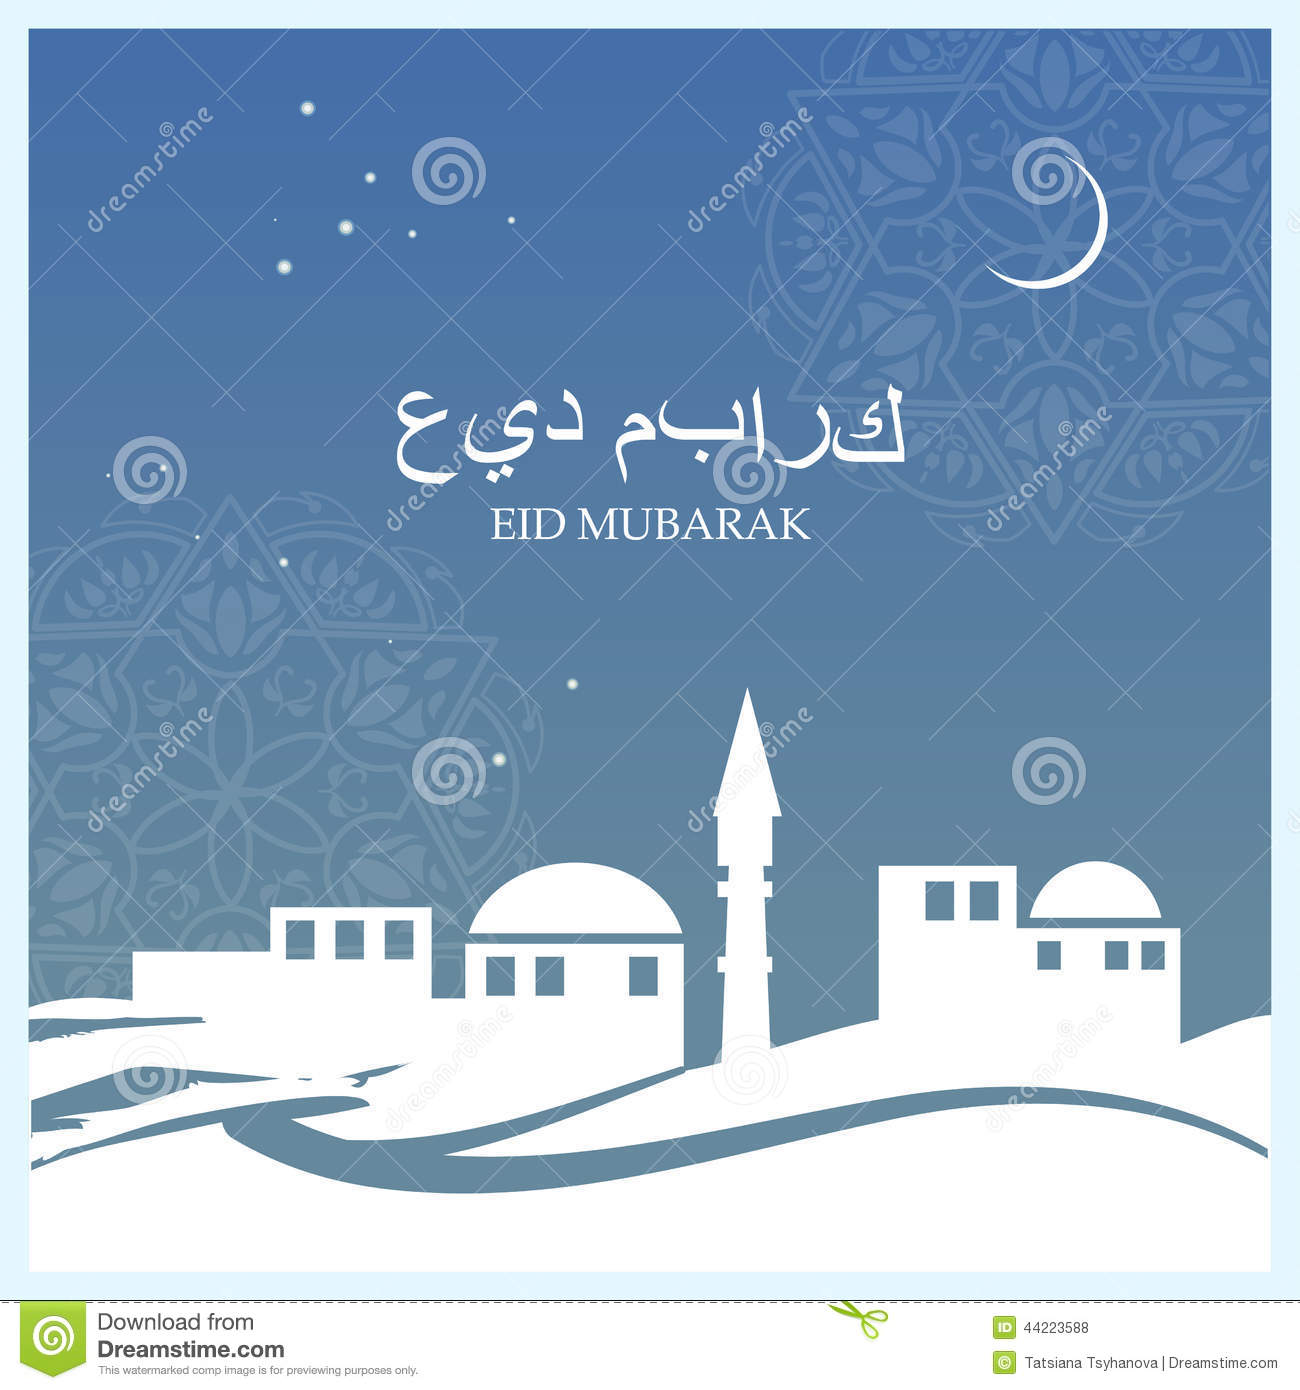 Popular Board Eid Al-Fitr Decorations - eid-ul-fitr-eid-mubarak-greeting-card-arabic-pattern-decorated-light-beige-background-mosque-morning-nature-background-holy-44223588  Photograph_45953 .jpg